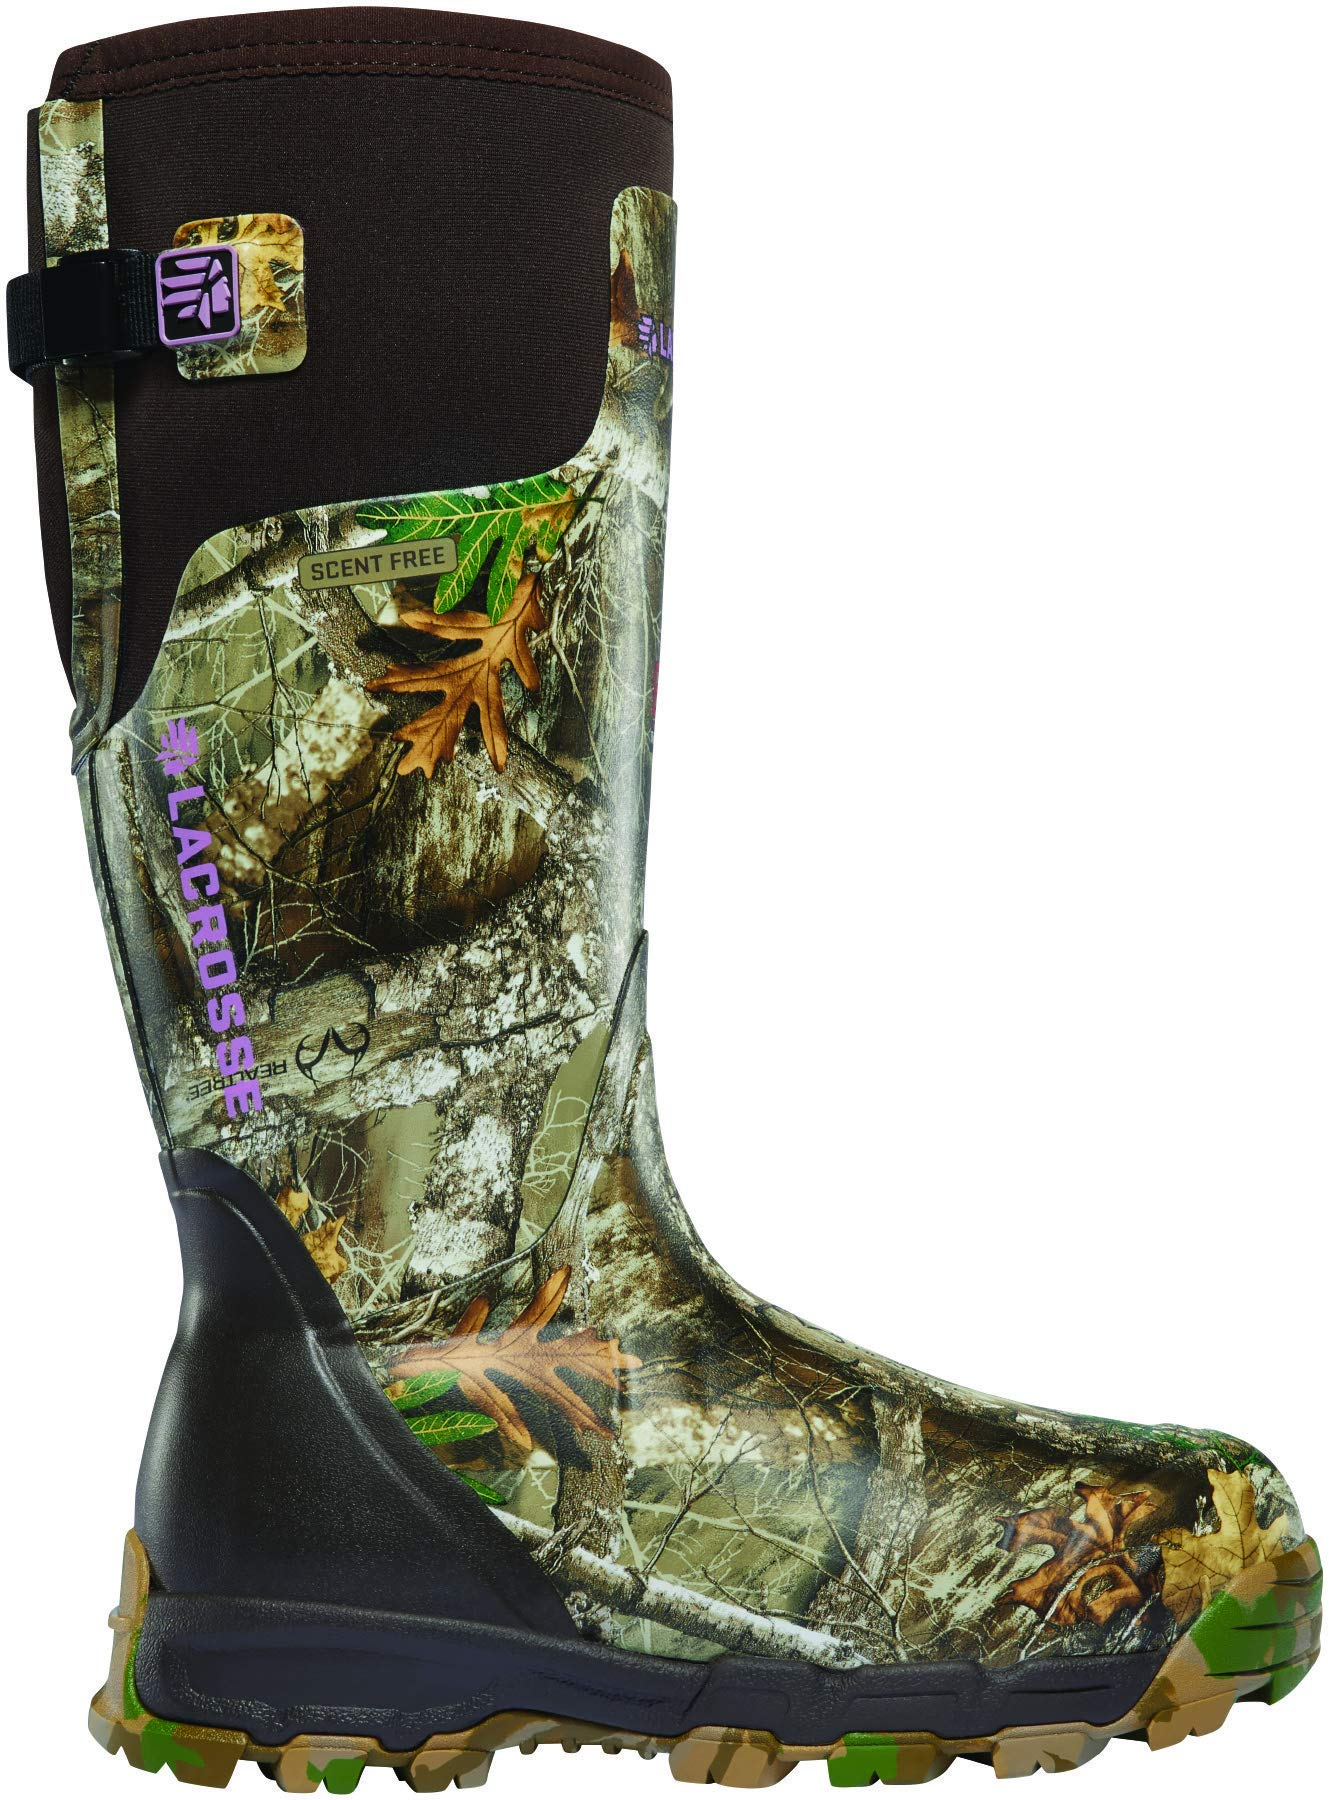 Lacrosse 376028 Women's Alphaburly Pro 15'' 800G Hunting Boot, Realtree Edge - 5 M US by Unknown